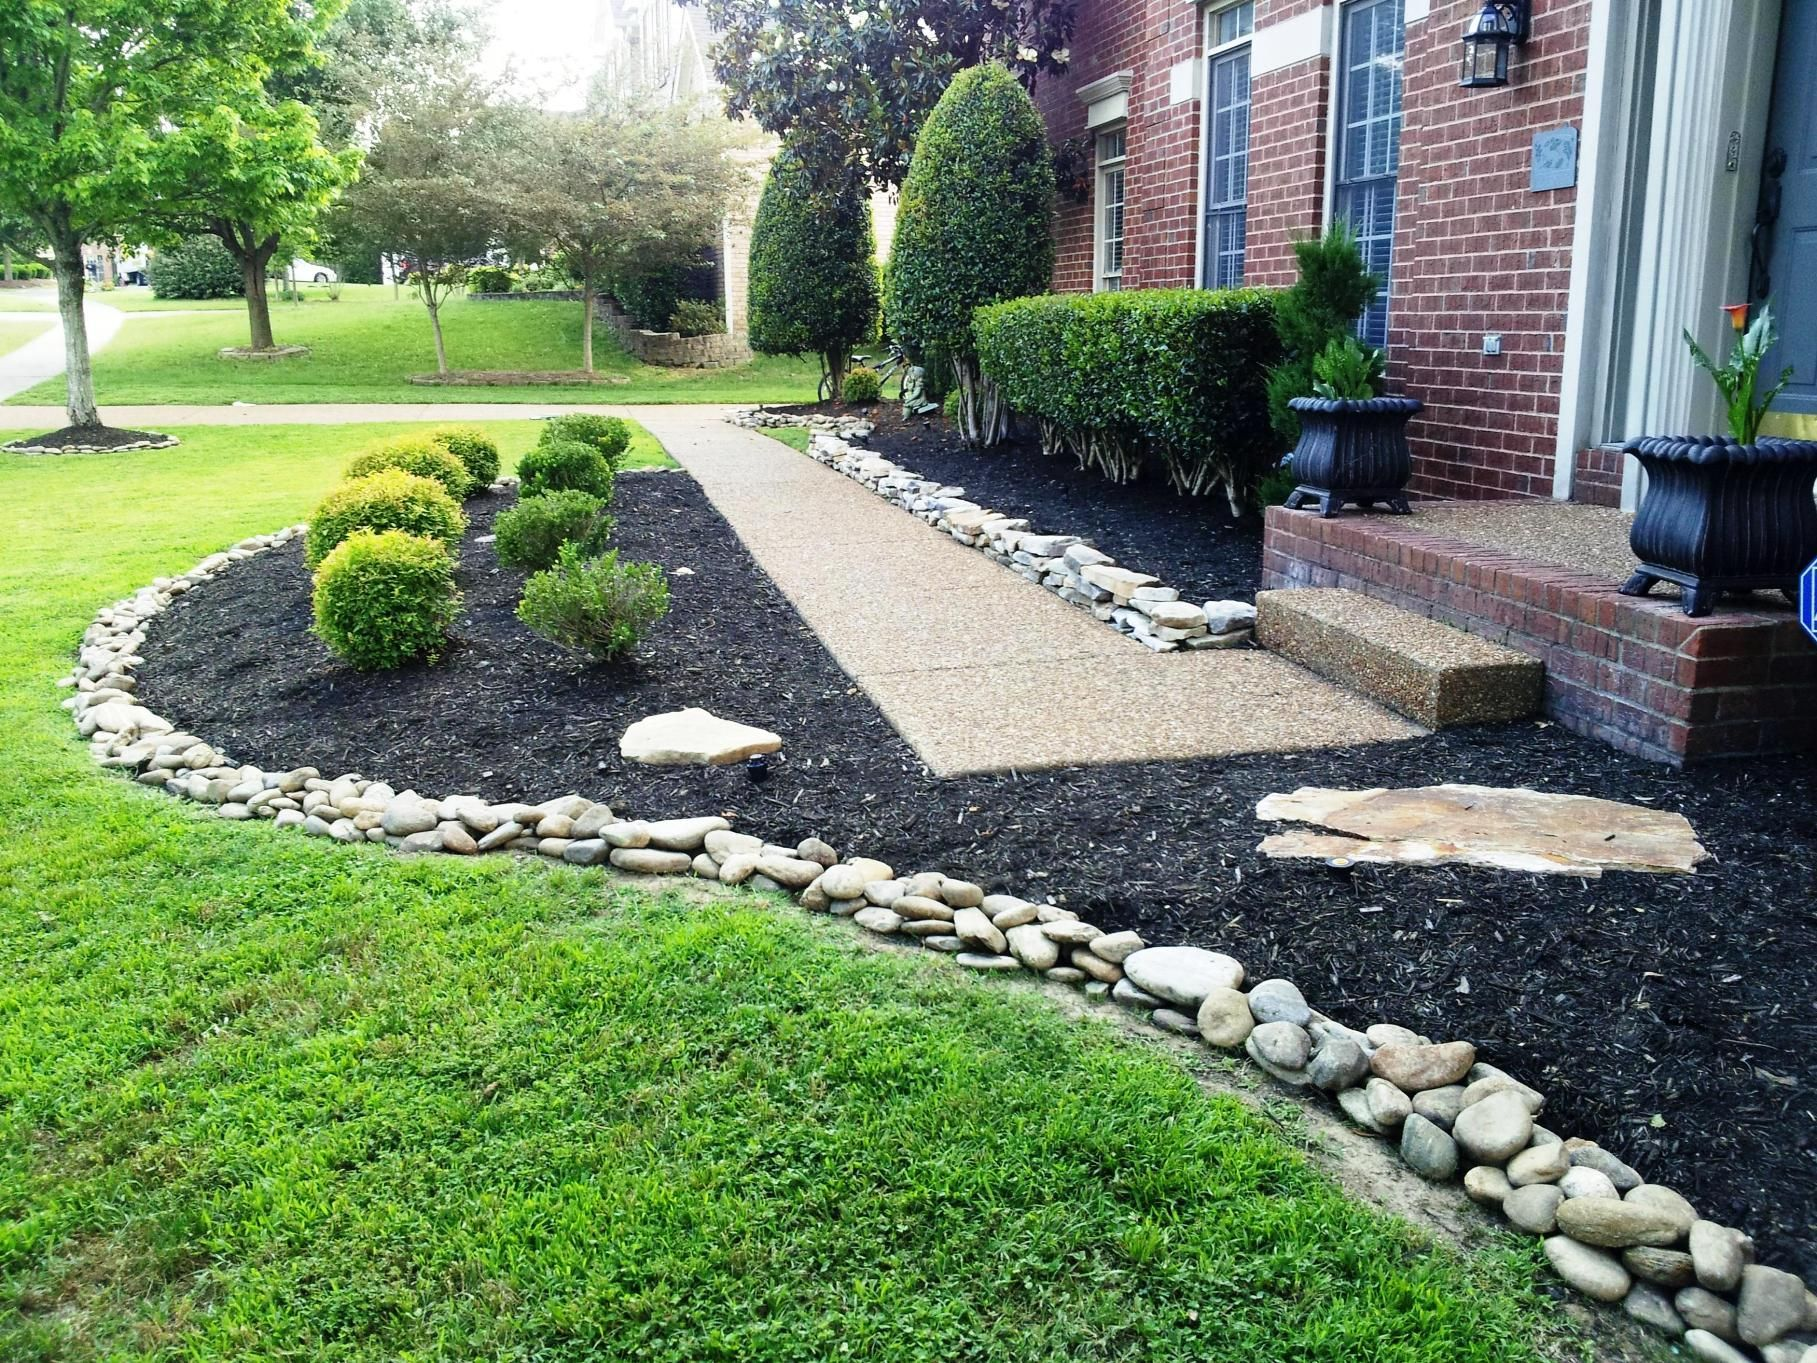 Ideas Home Design And Decor Types Of Red Rock Landscaping Ideas Stone Landscaping Landscaping With Rocks Mulch Landscaping